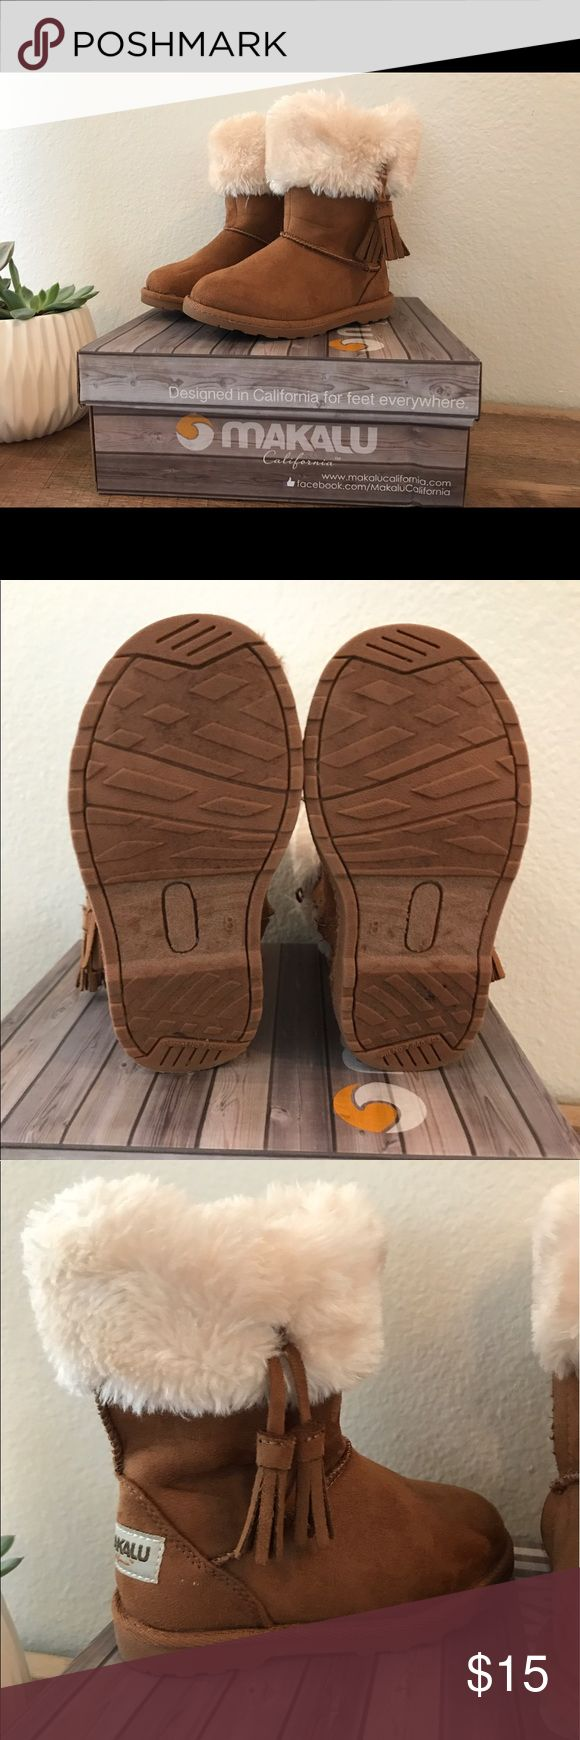 Makalu Toddler Girl Boots Brown Makalu Toddler Girl Boots. Size 8, side zipper fastening. Great condition. Makalu Shoes Boots